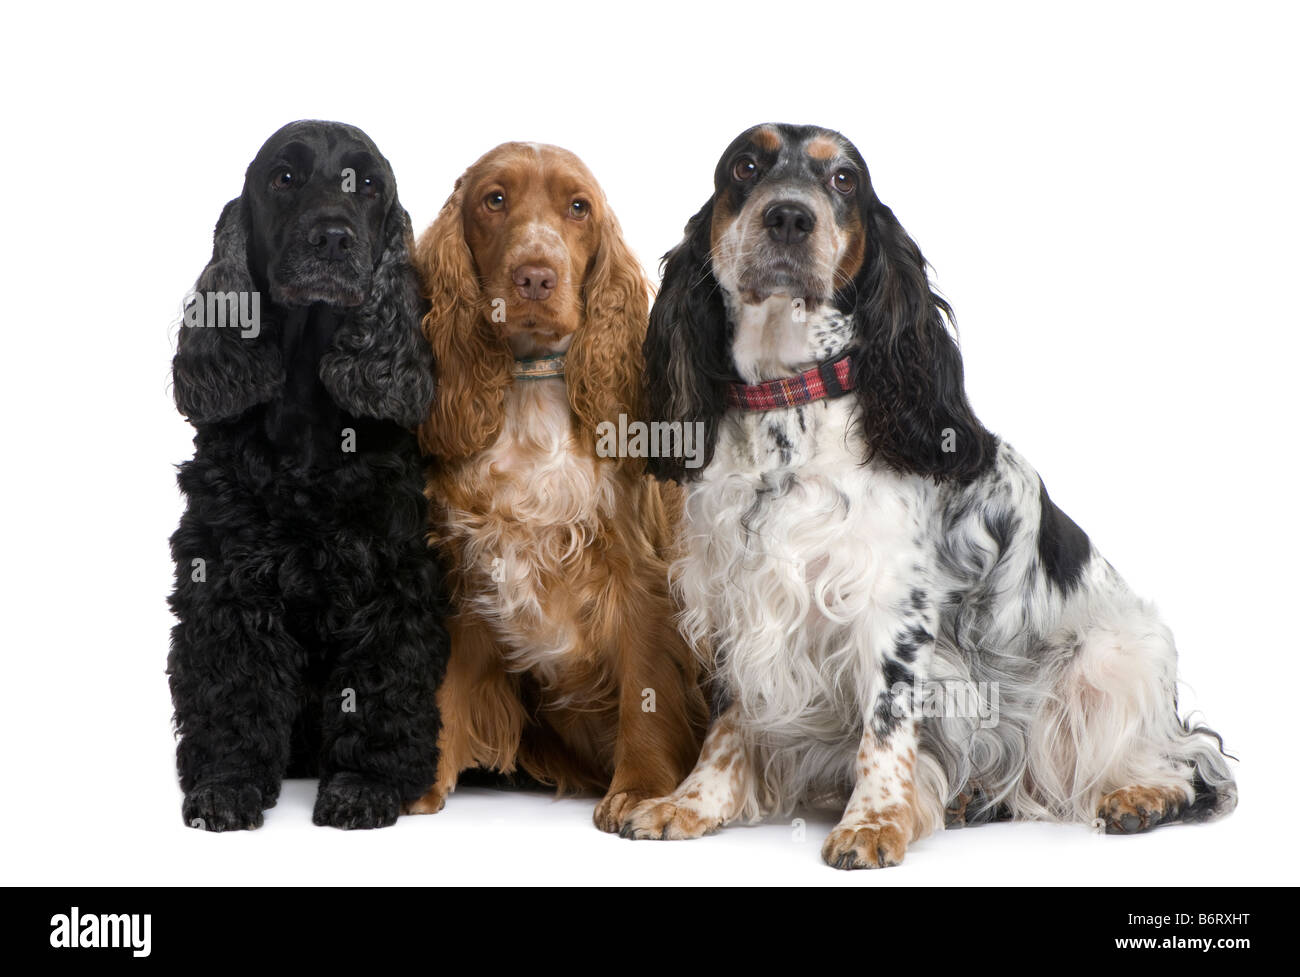 group of three Cocker Spaniels in front of a white background - Stock Image